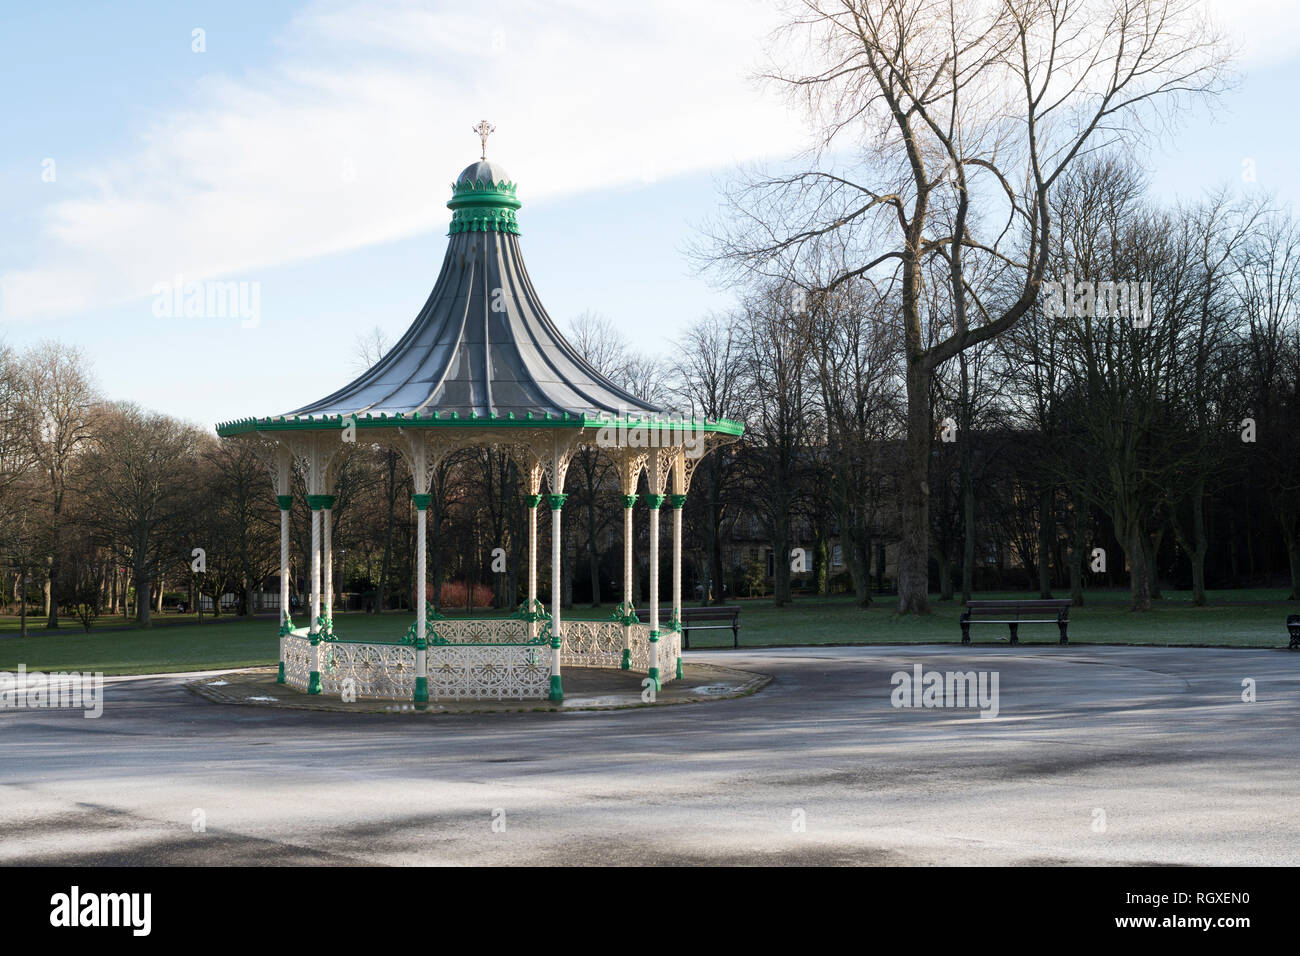 Bandstand on a frosty winter's day, Leazes Park, Newcastle upon Tyne, England, UK - Stock Image